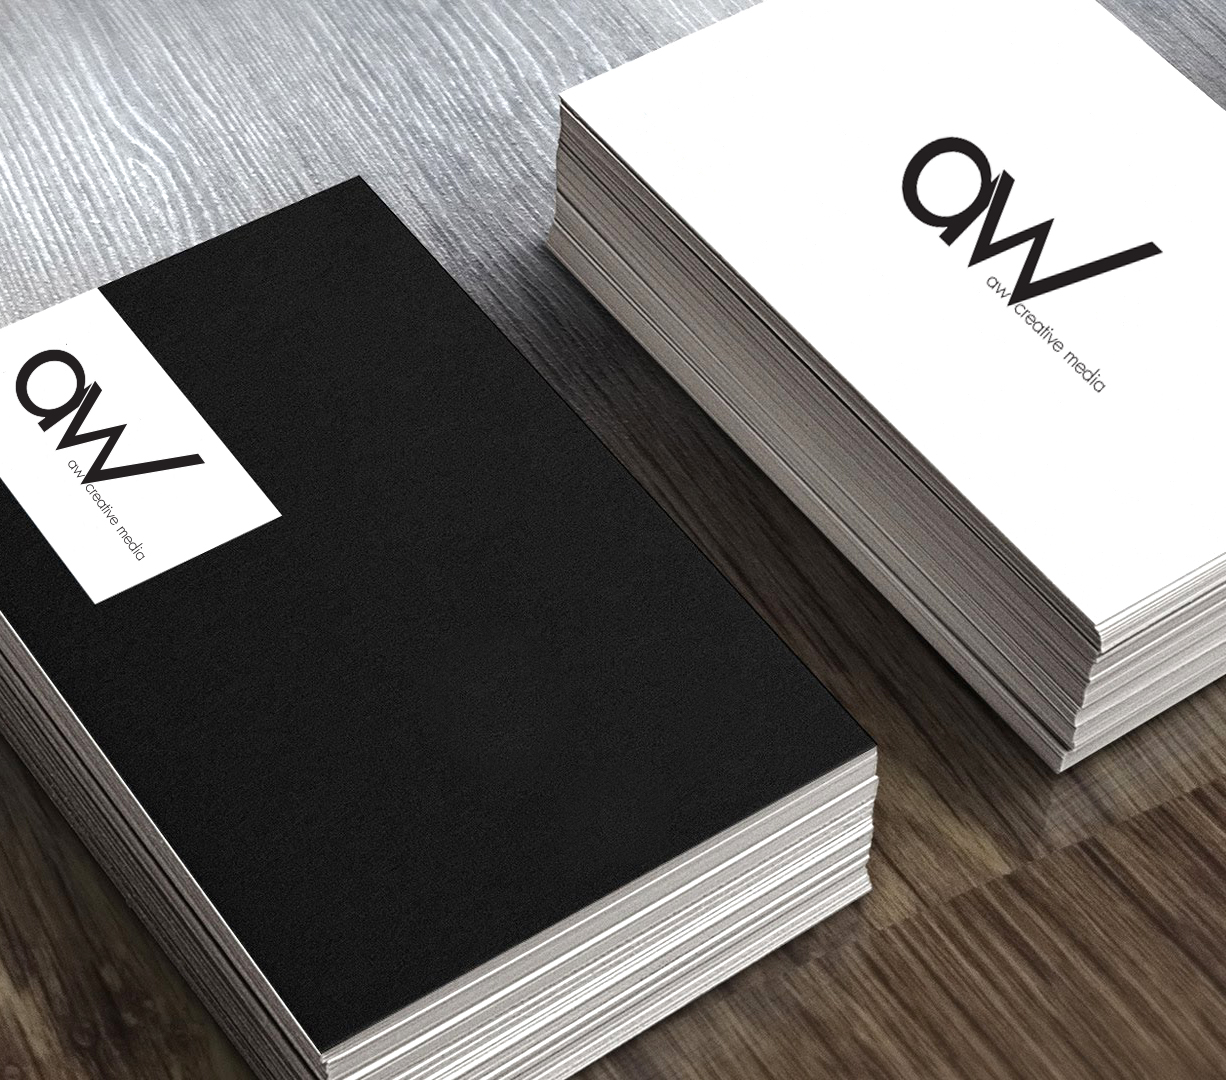 Printed custom business cards with logo